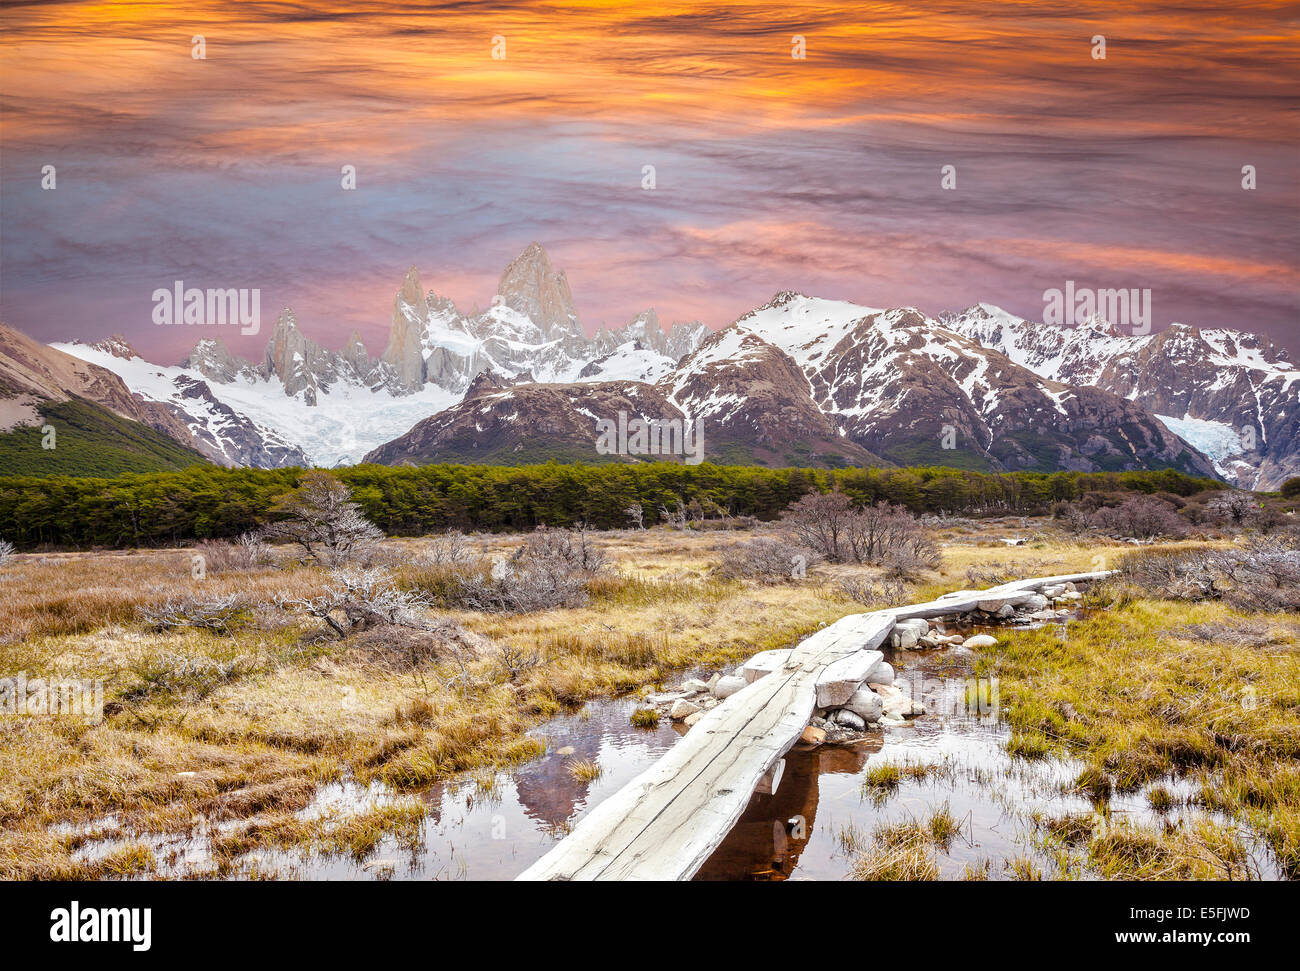 Footbridge in Andes, Fitz Roy mountain range, Patagonia, Argentina - Stock Image